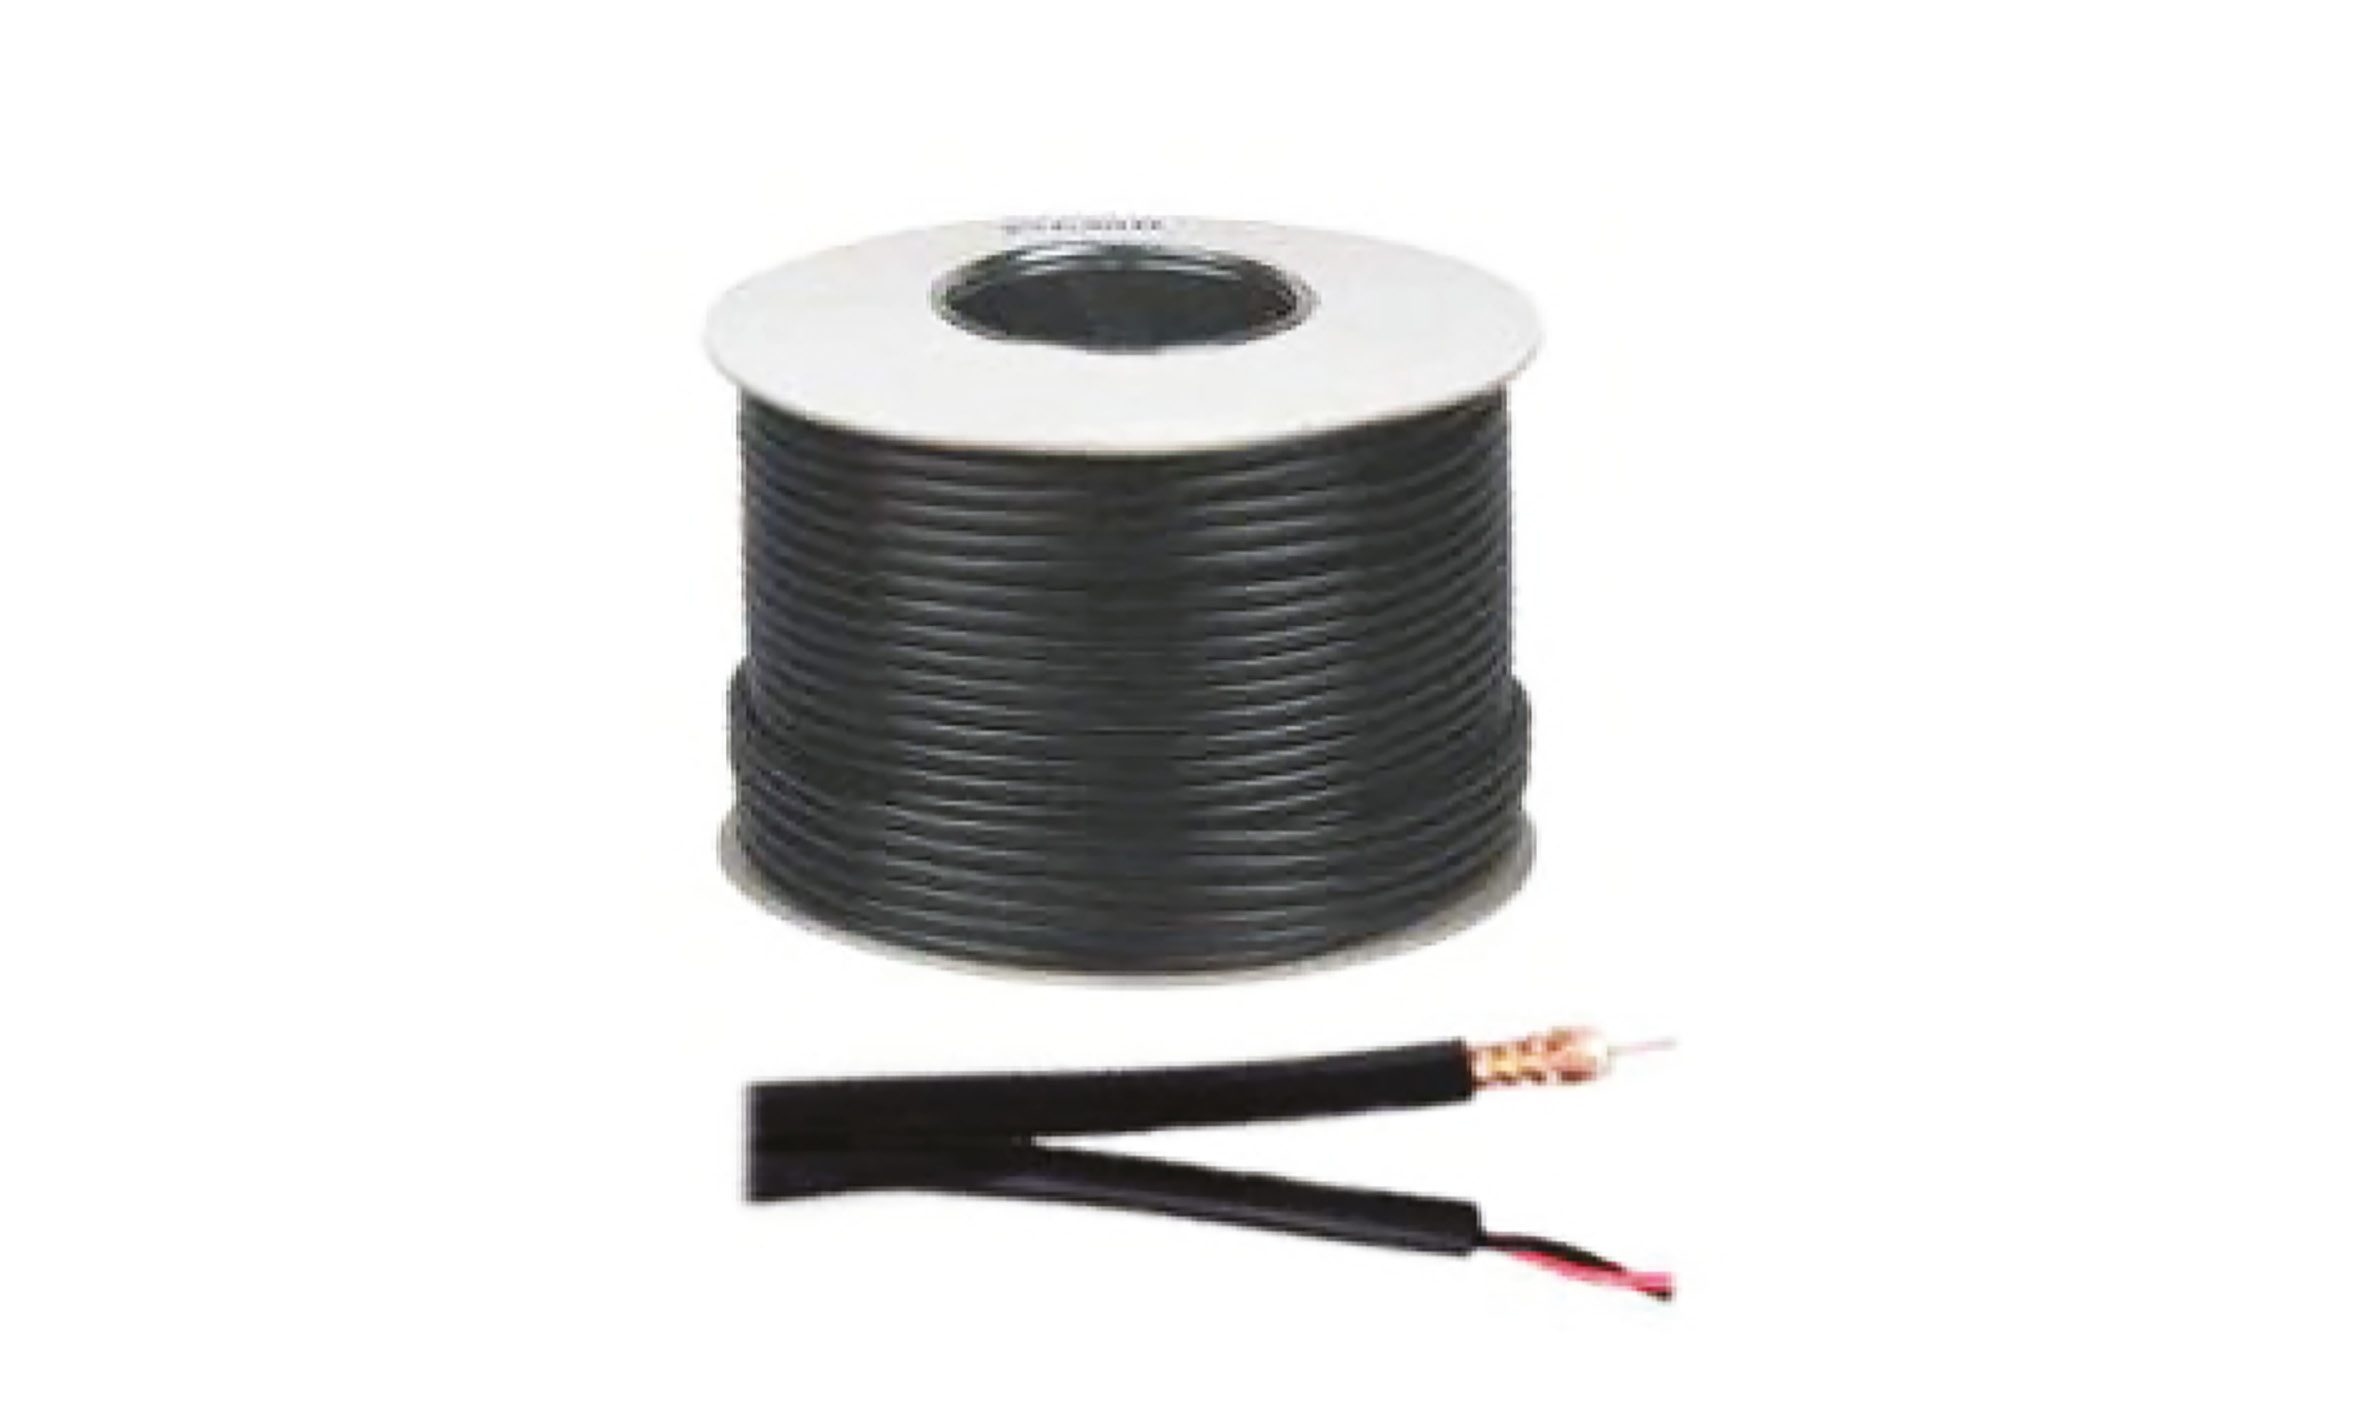 RG-59 Cables